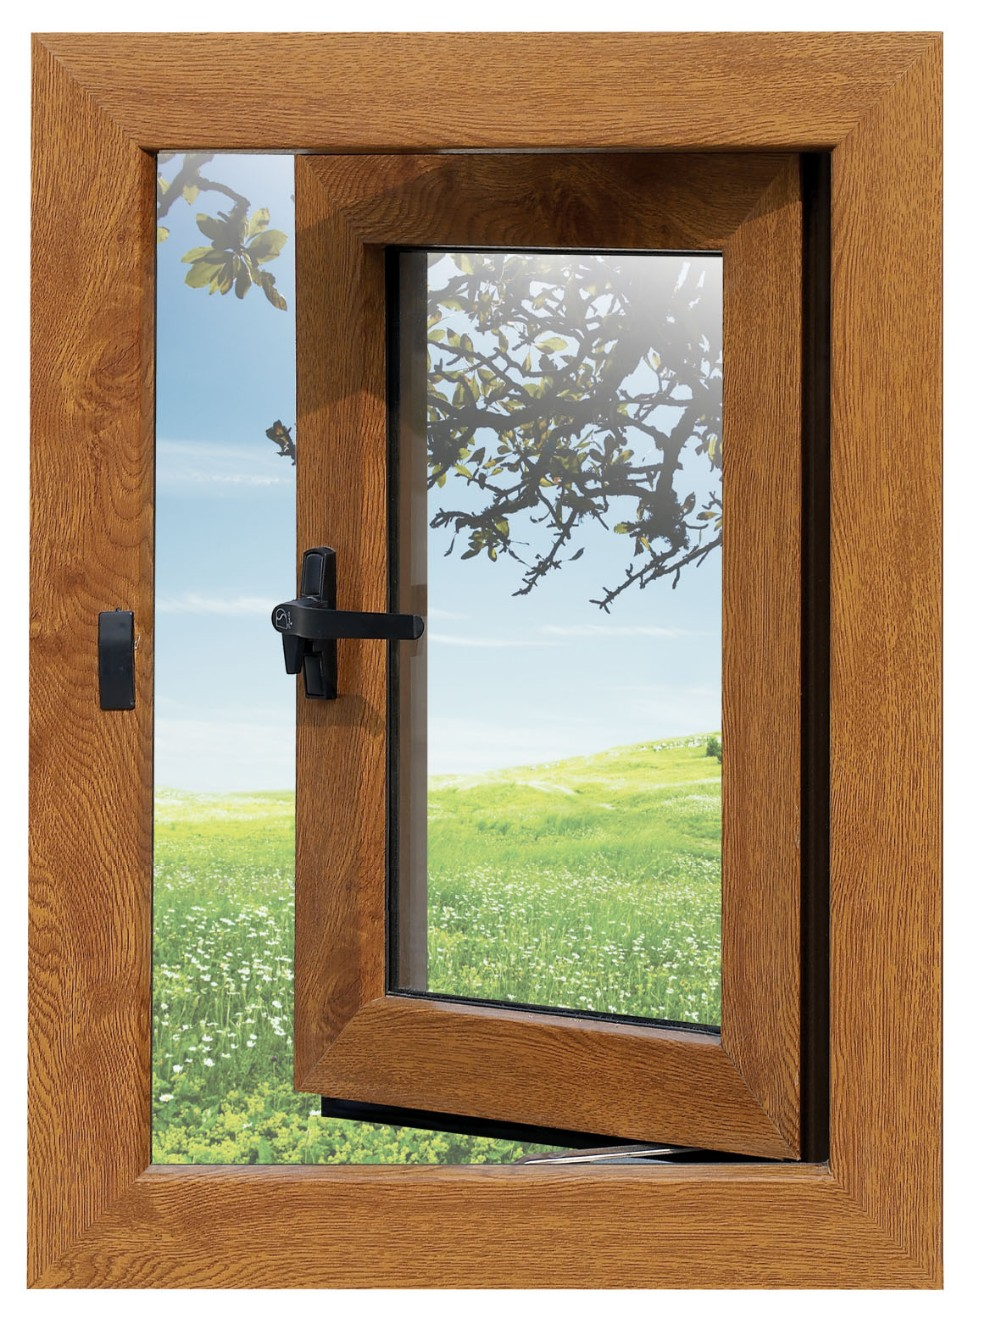 Upvc Small Cheap Casement Window Single Panel Kitchen. When Do You Need A Financial Advisor. Hdd Data Recovery Equipment Senior Care Com. Home Insurance Quotes Ontario. Denial Of Service Attack Tools. Girls Communion Invitations My Language Lab. Auto Insurance Rate Comparison By State. Trade Show Exhibit Design Plumbers Quincy Ma. Logistics Courses Online Benold Middle School